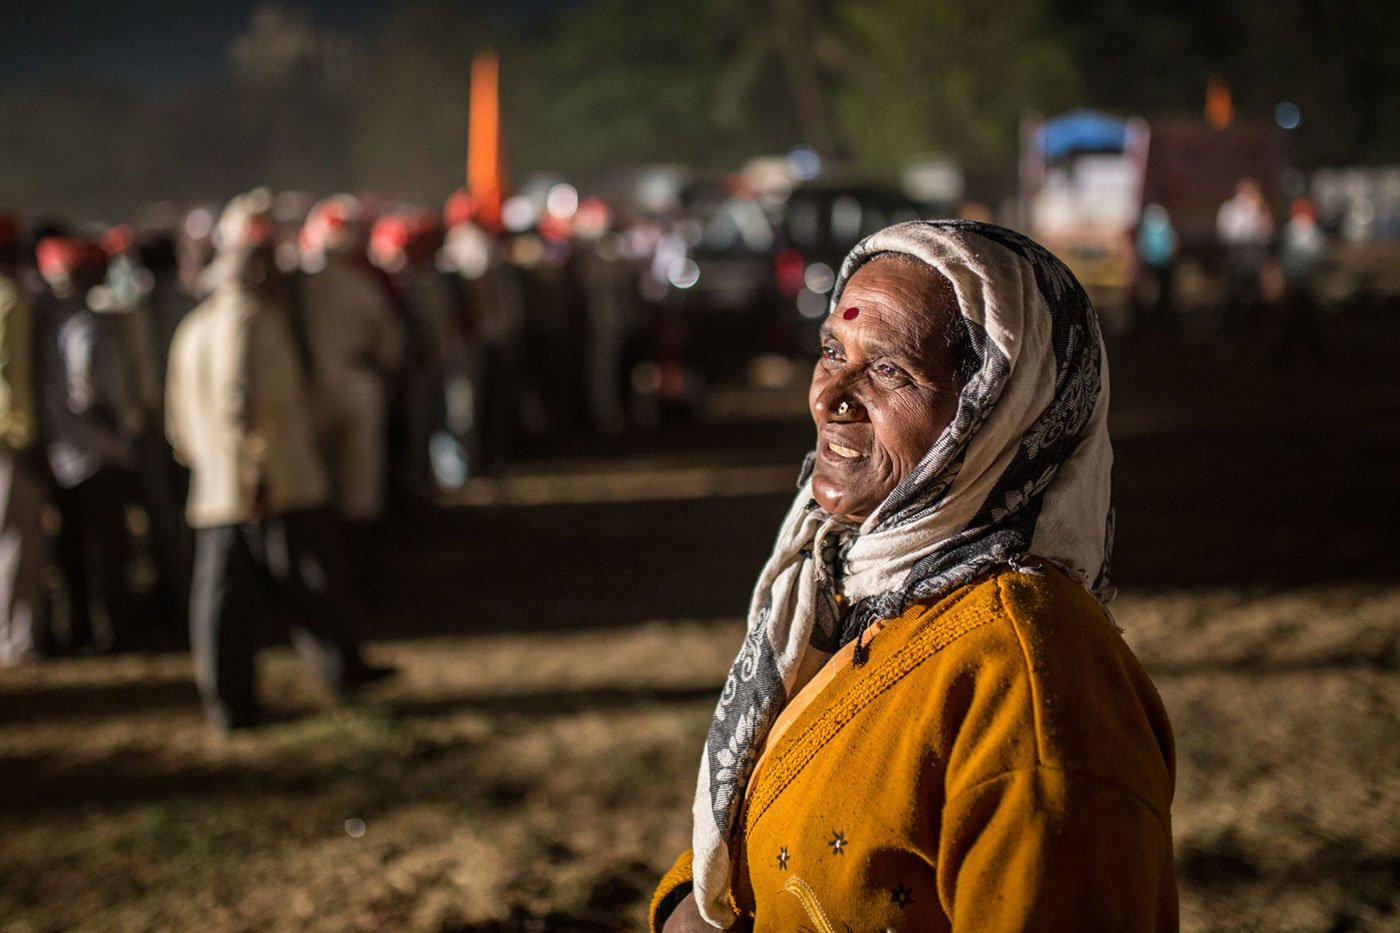 A woman with her head covered standing at Somaiya ground, Mumbai, at night